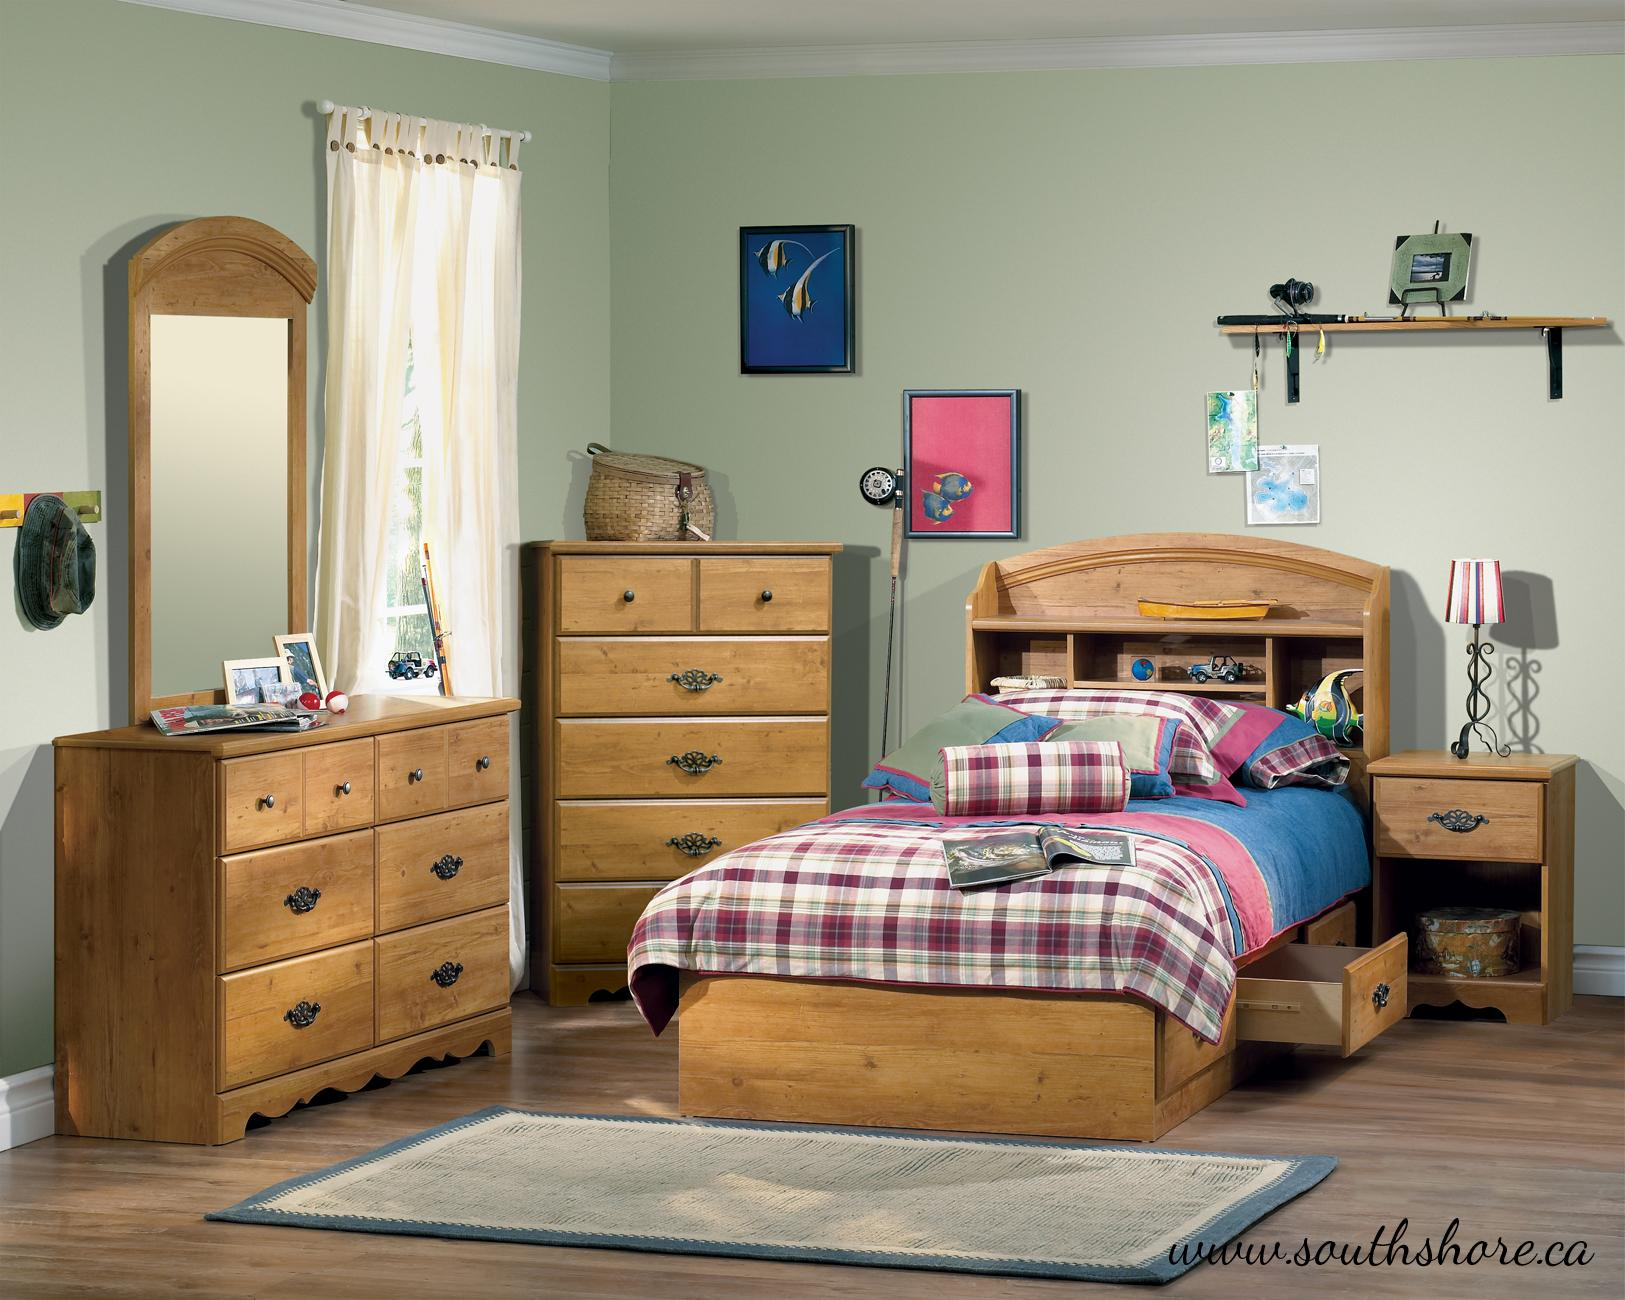 chests of view furniture country store bedroom willey chest rcwilley drawers pine jsp drawer libra rc